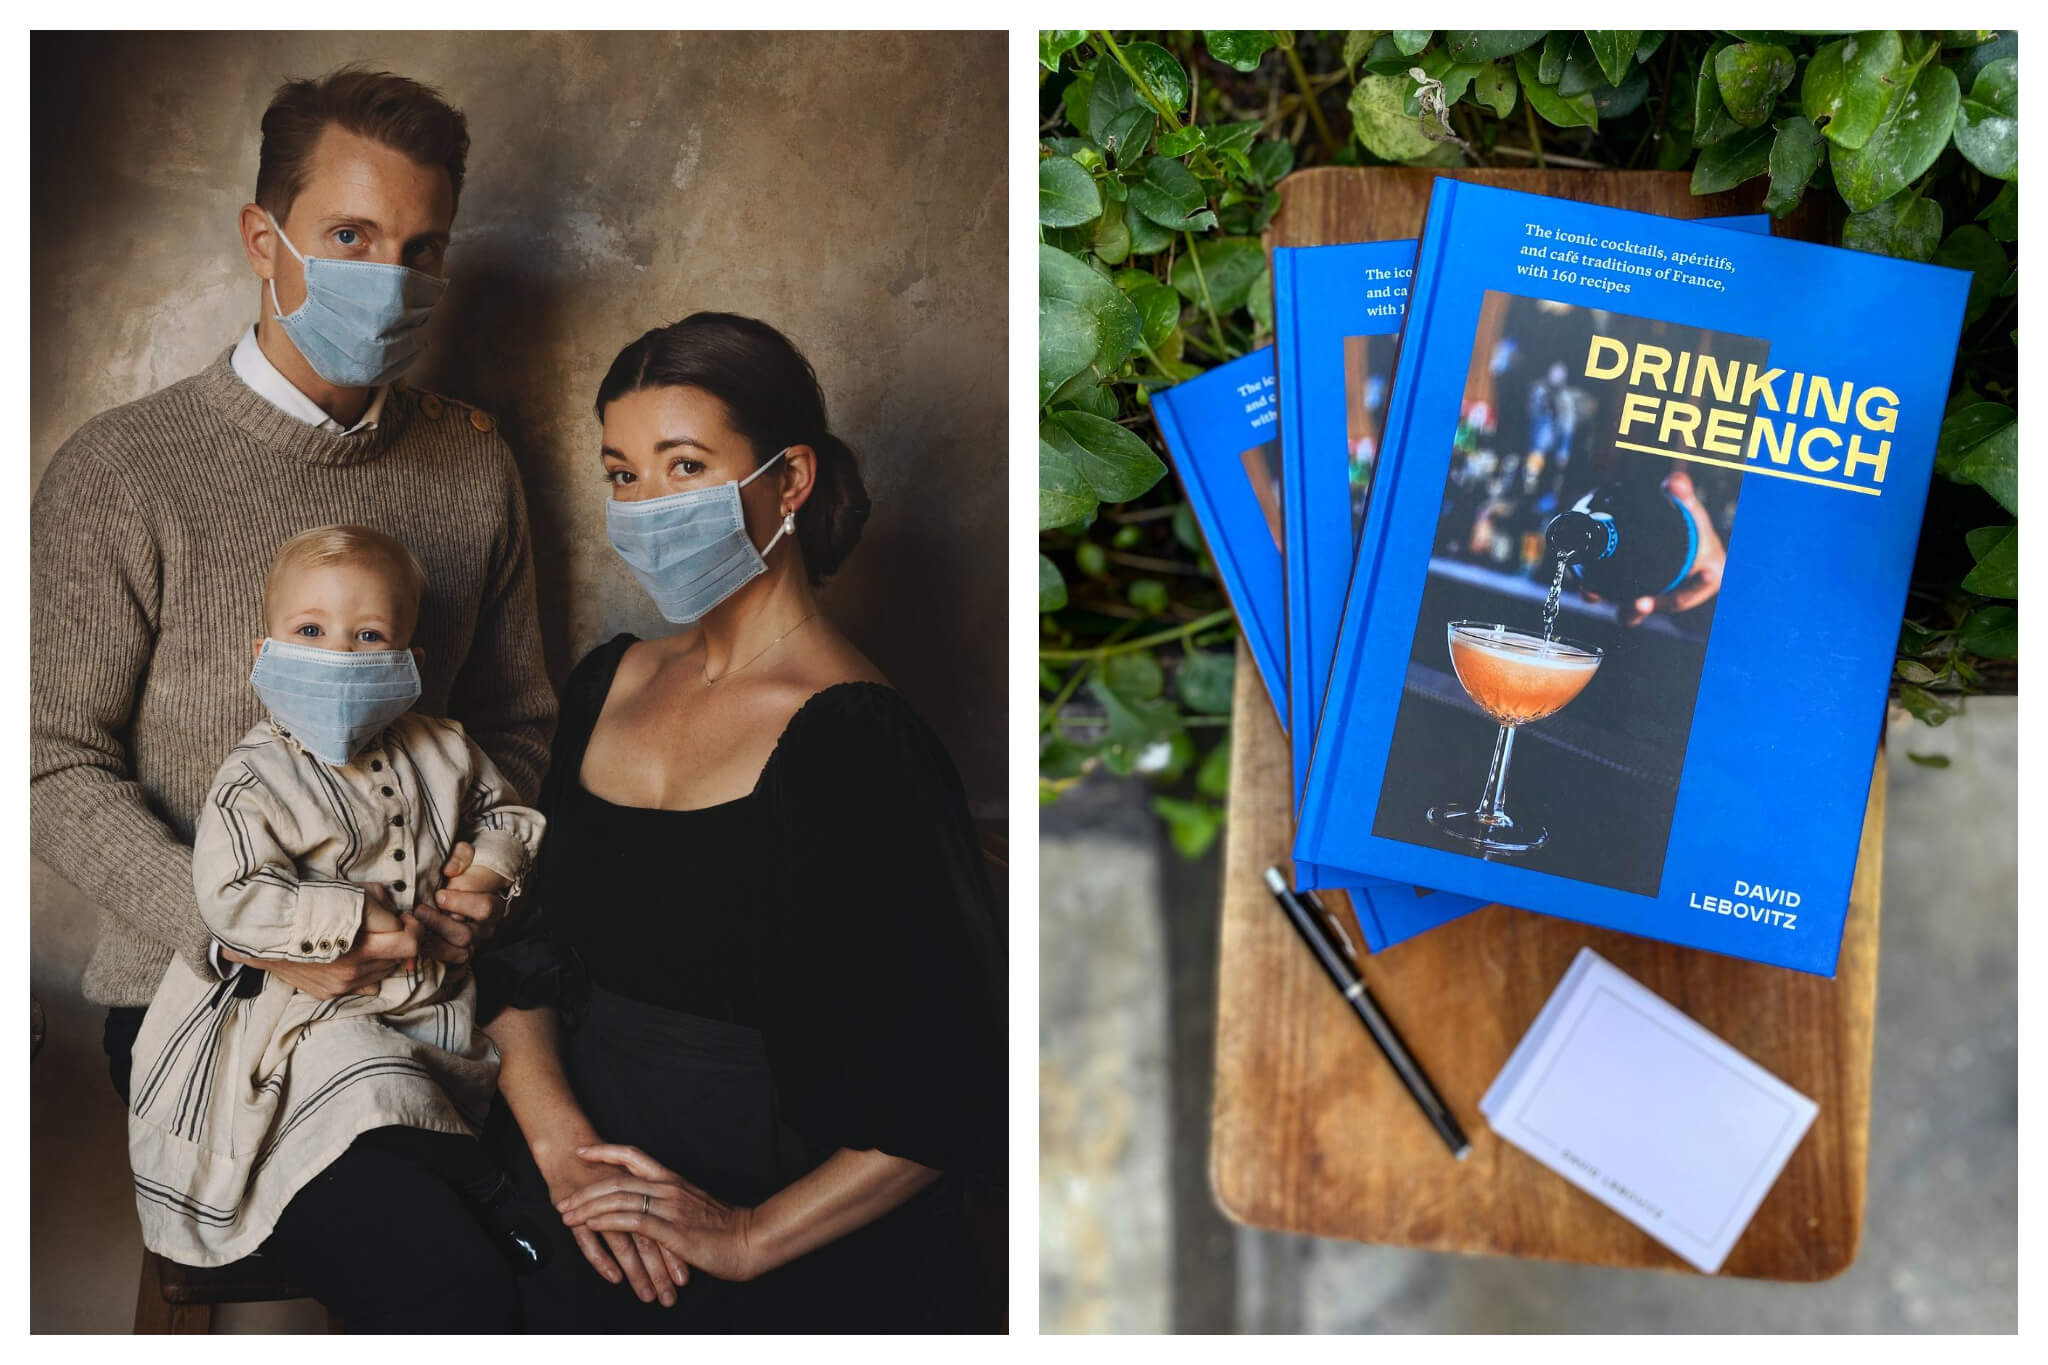 Left: A father, mother and daughter pose for a portrait while wearing blue facial masks amidst the coronavirus pandemic, Right: Three copies of David Lebovitz's new book, Drinking French, sit atop a wooden table.